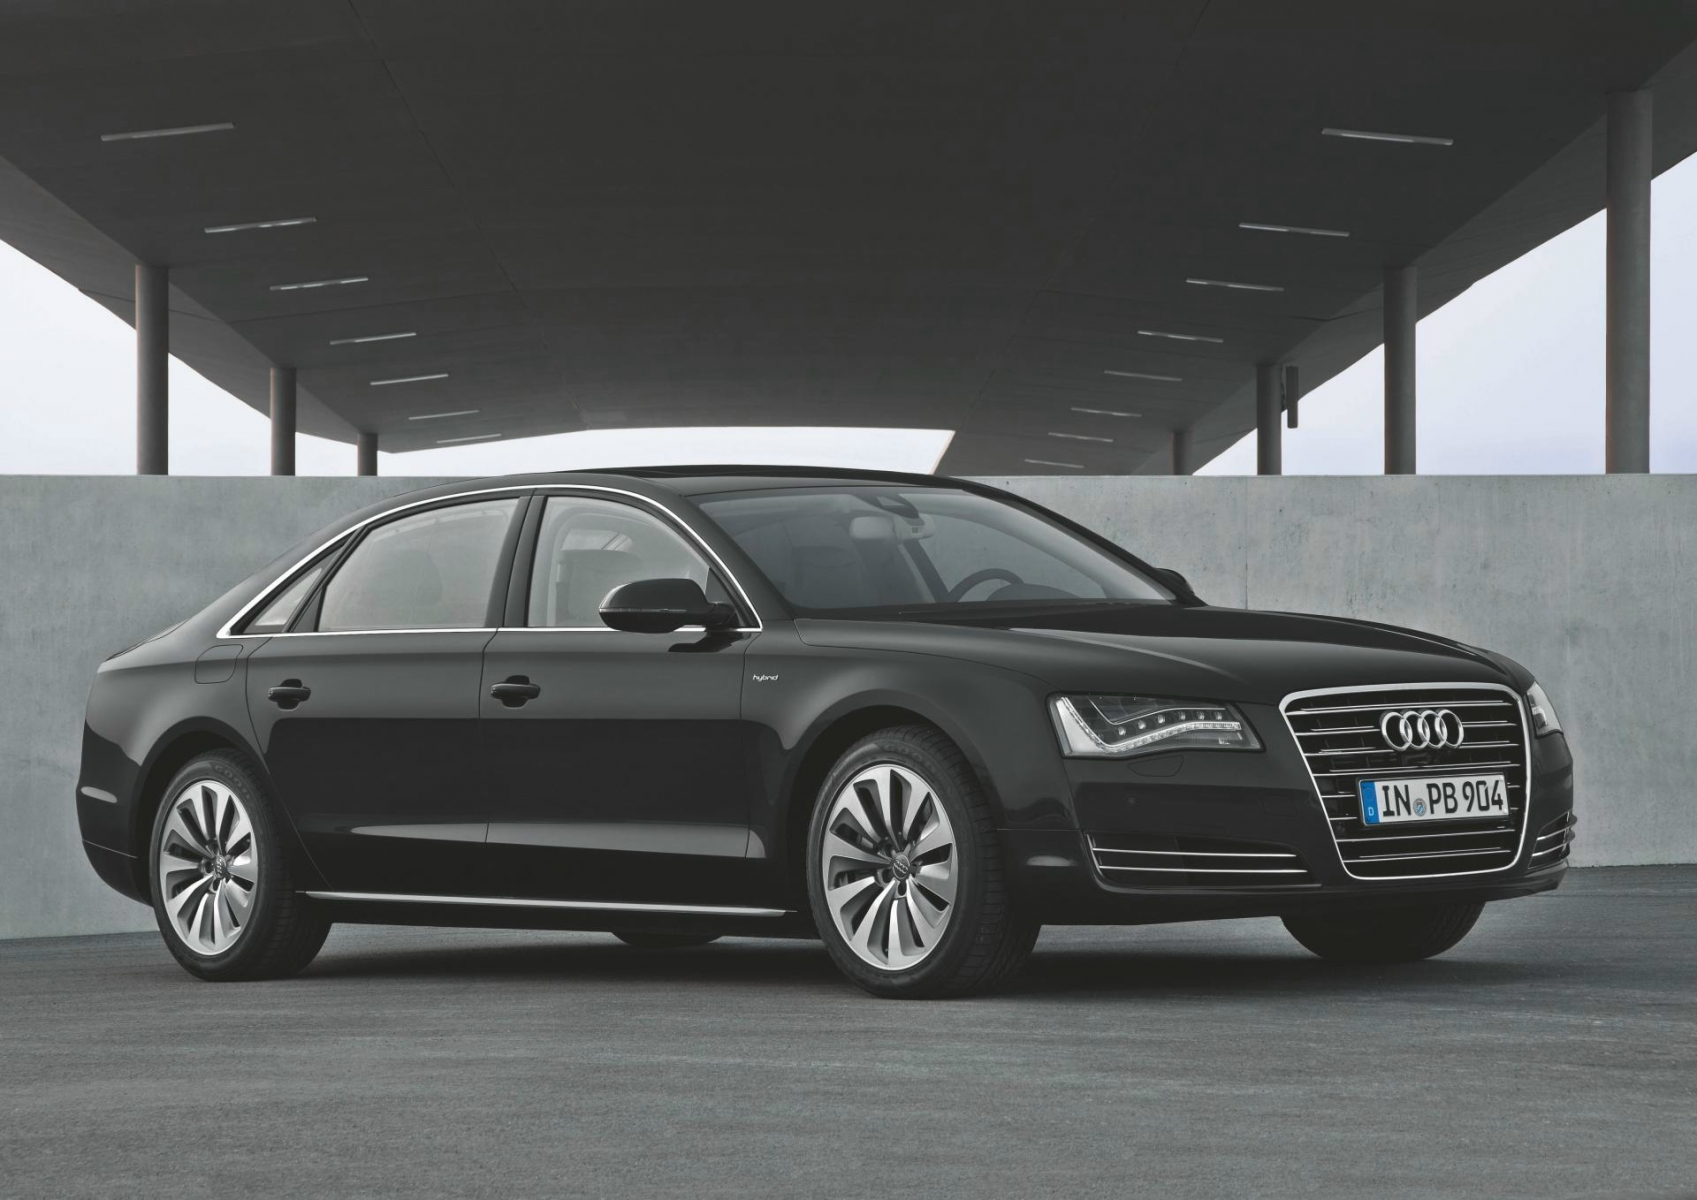 Audi A8 TFSI E HD Wallpapers Background Images Photos 1697x1200